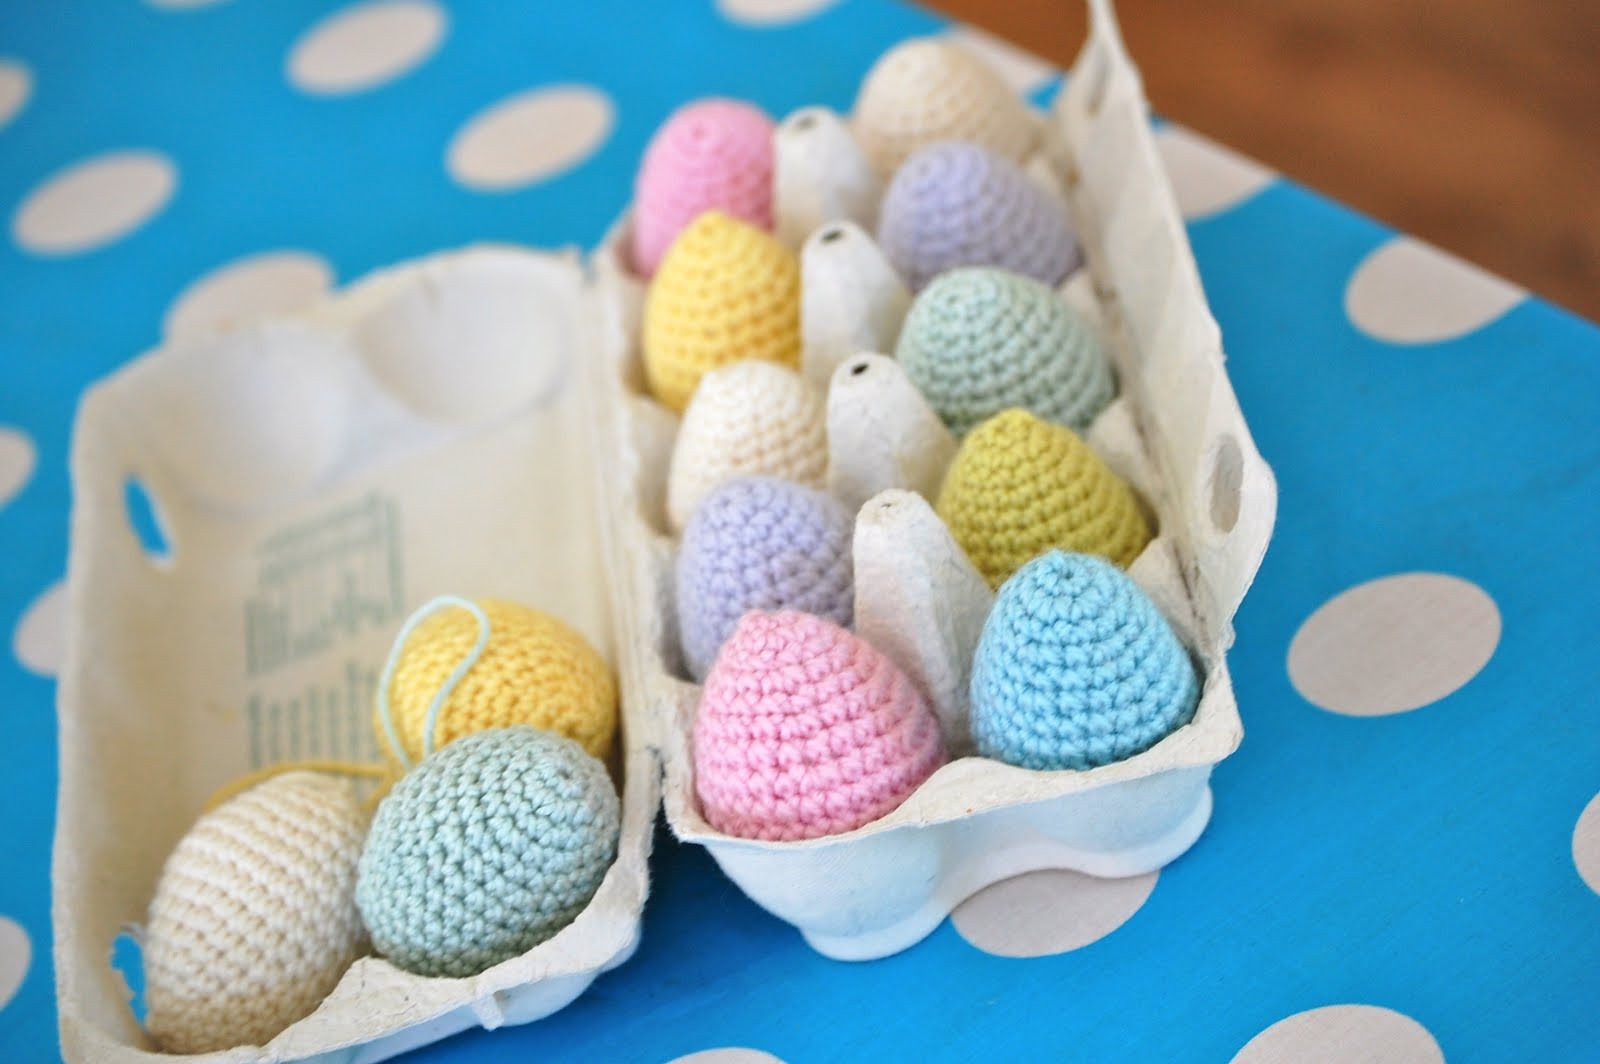 Crochet Easter Eggs Luxury Greedy for Colour Crochet Easter Eggs Of Incredible 43 Ideas Crochet Easter Eggs